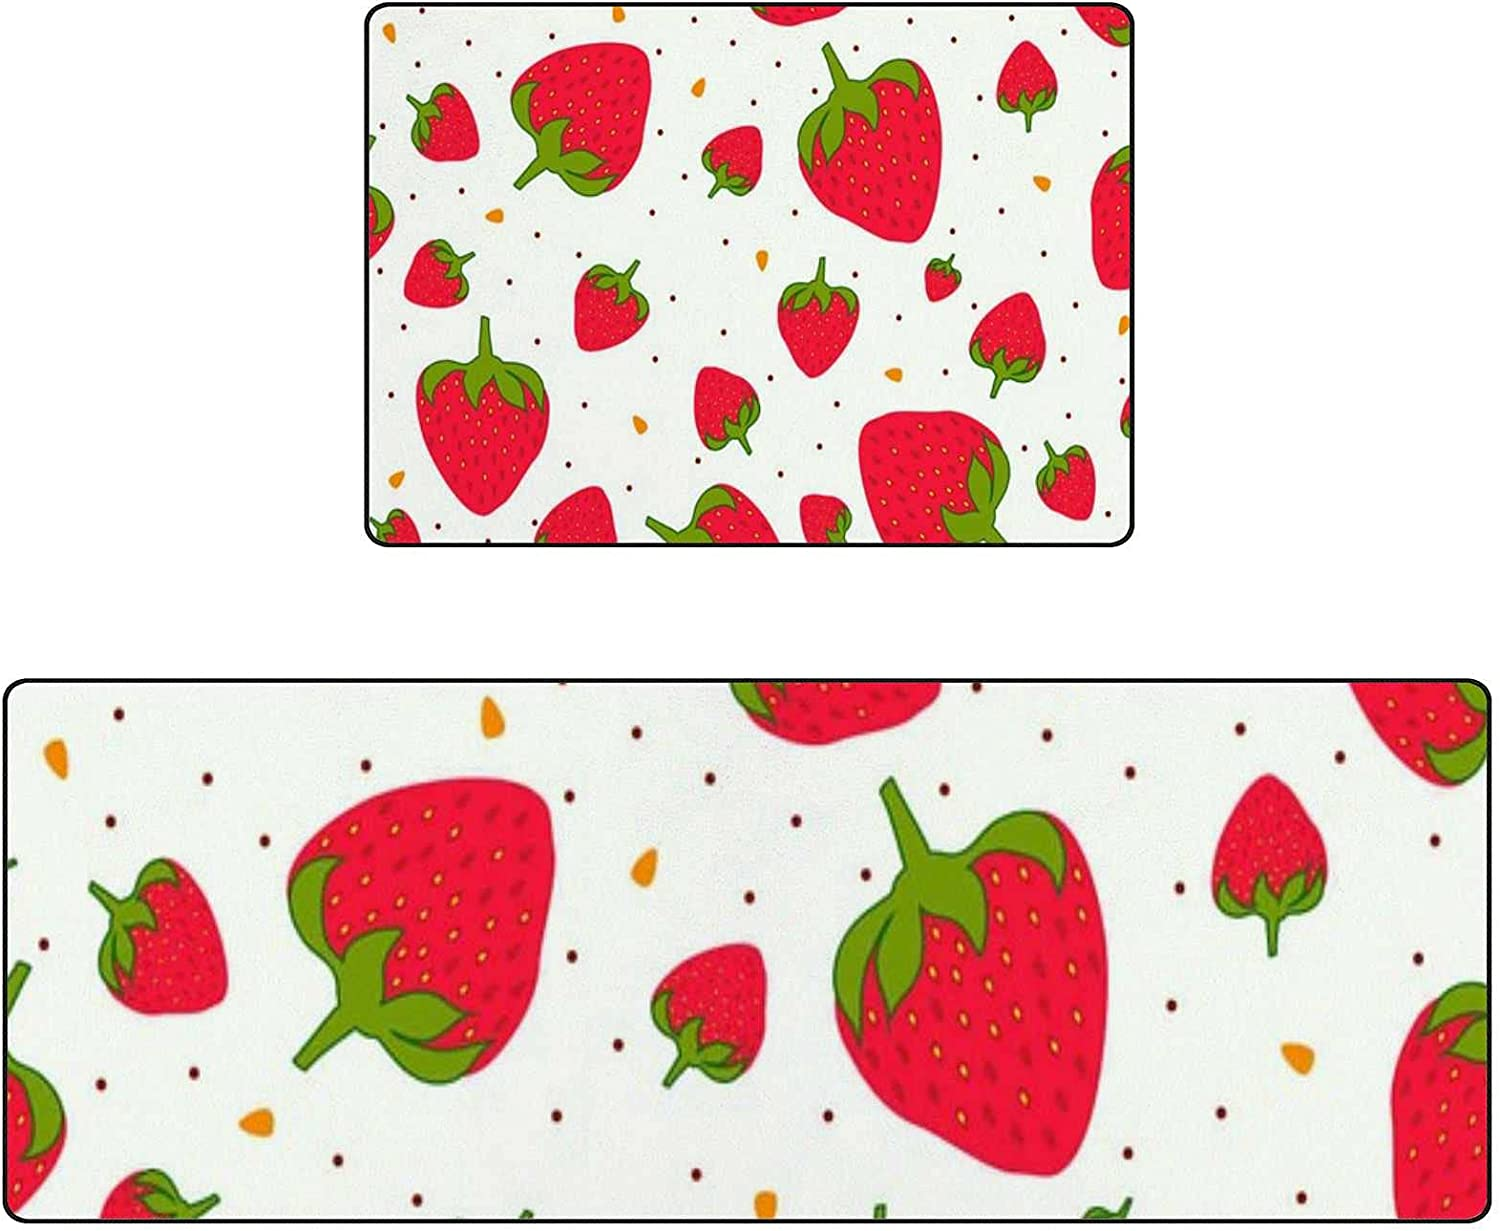 Kitchen Mat Rug Anti-Fatigue Set of 2 Cushioned Red Strawberries Non-Slip Absorbent Kitchen Floor Mats Comfort Sprinkles Decor Runner Rugs for Home, Office, Laundry Room